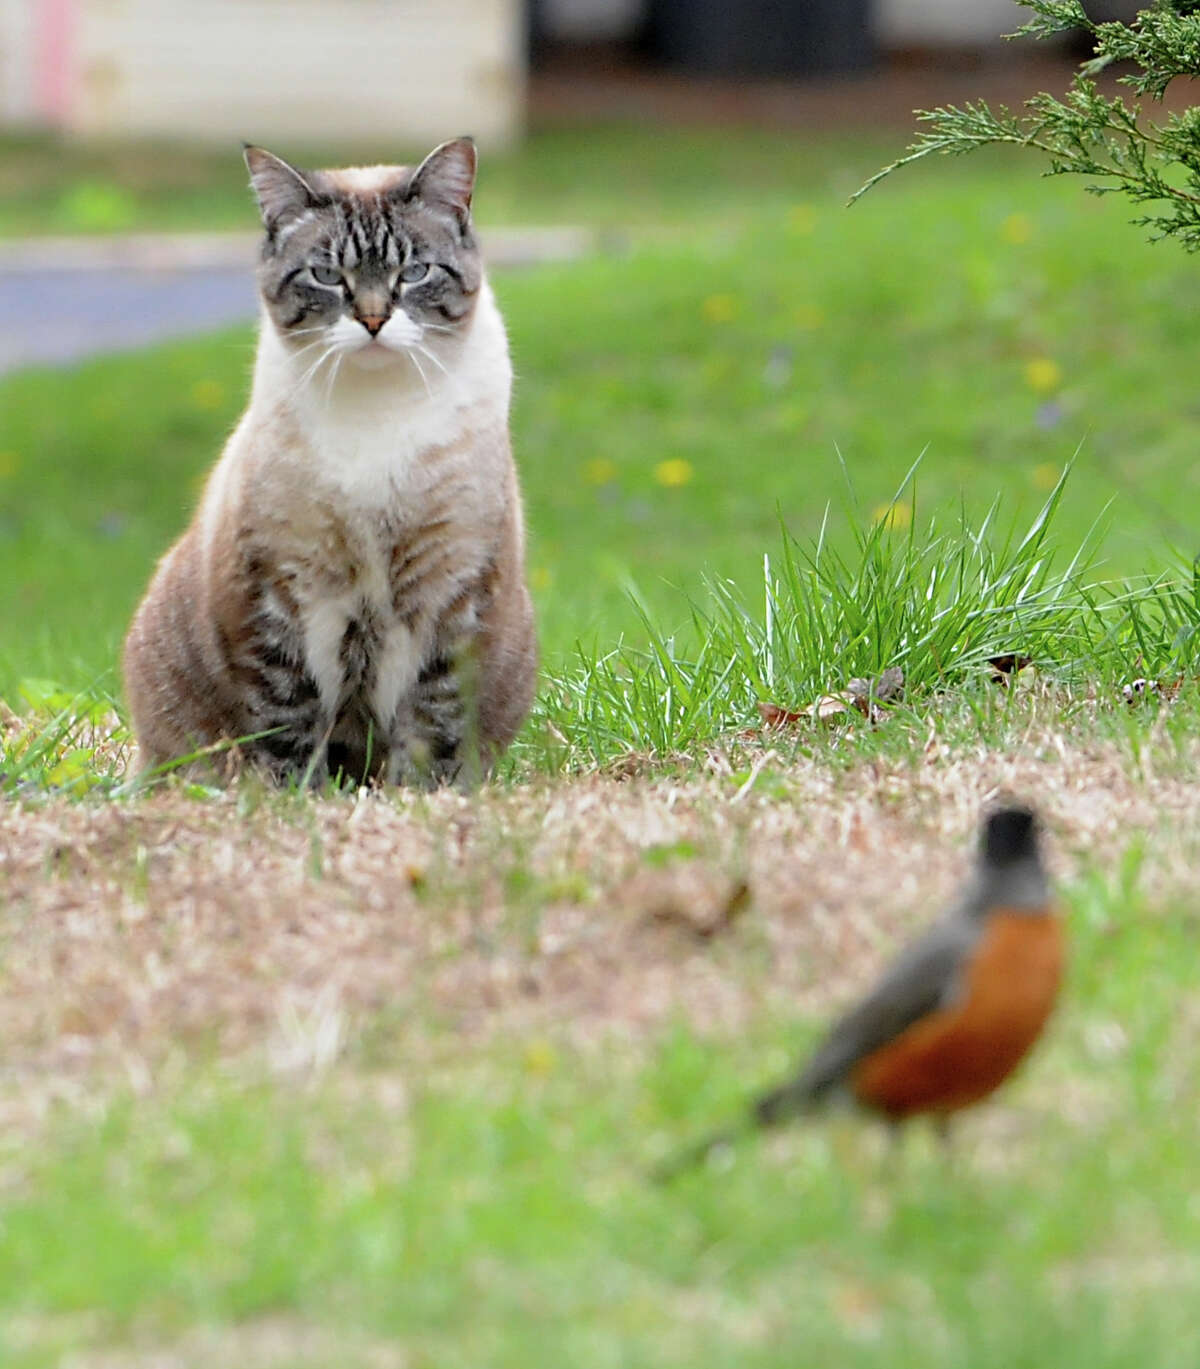 A cat watches a robin from as distance on Friday, April 29, 2016 in Albany, N.Y. (Lori Van Buren / Times Union)